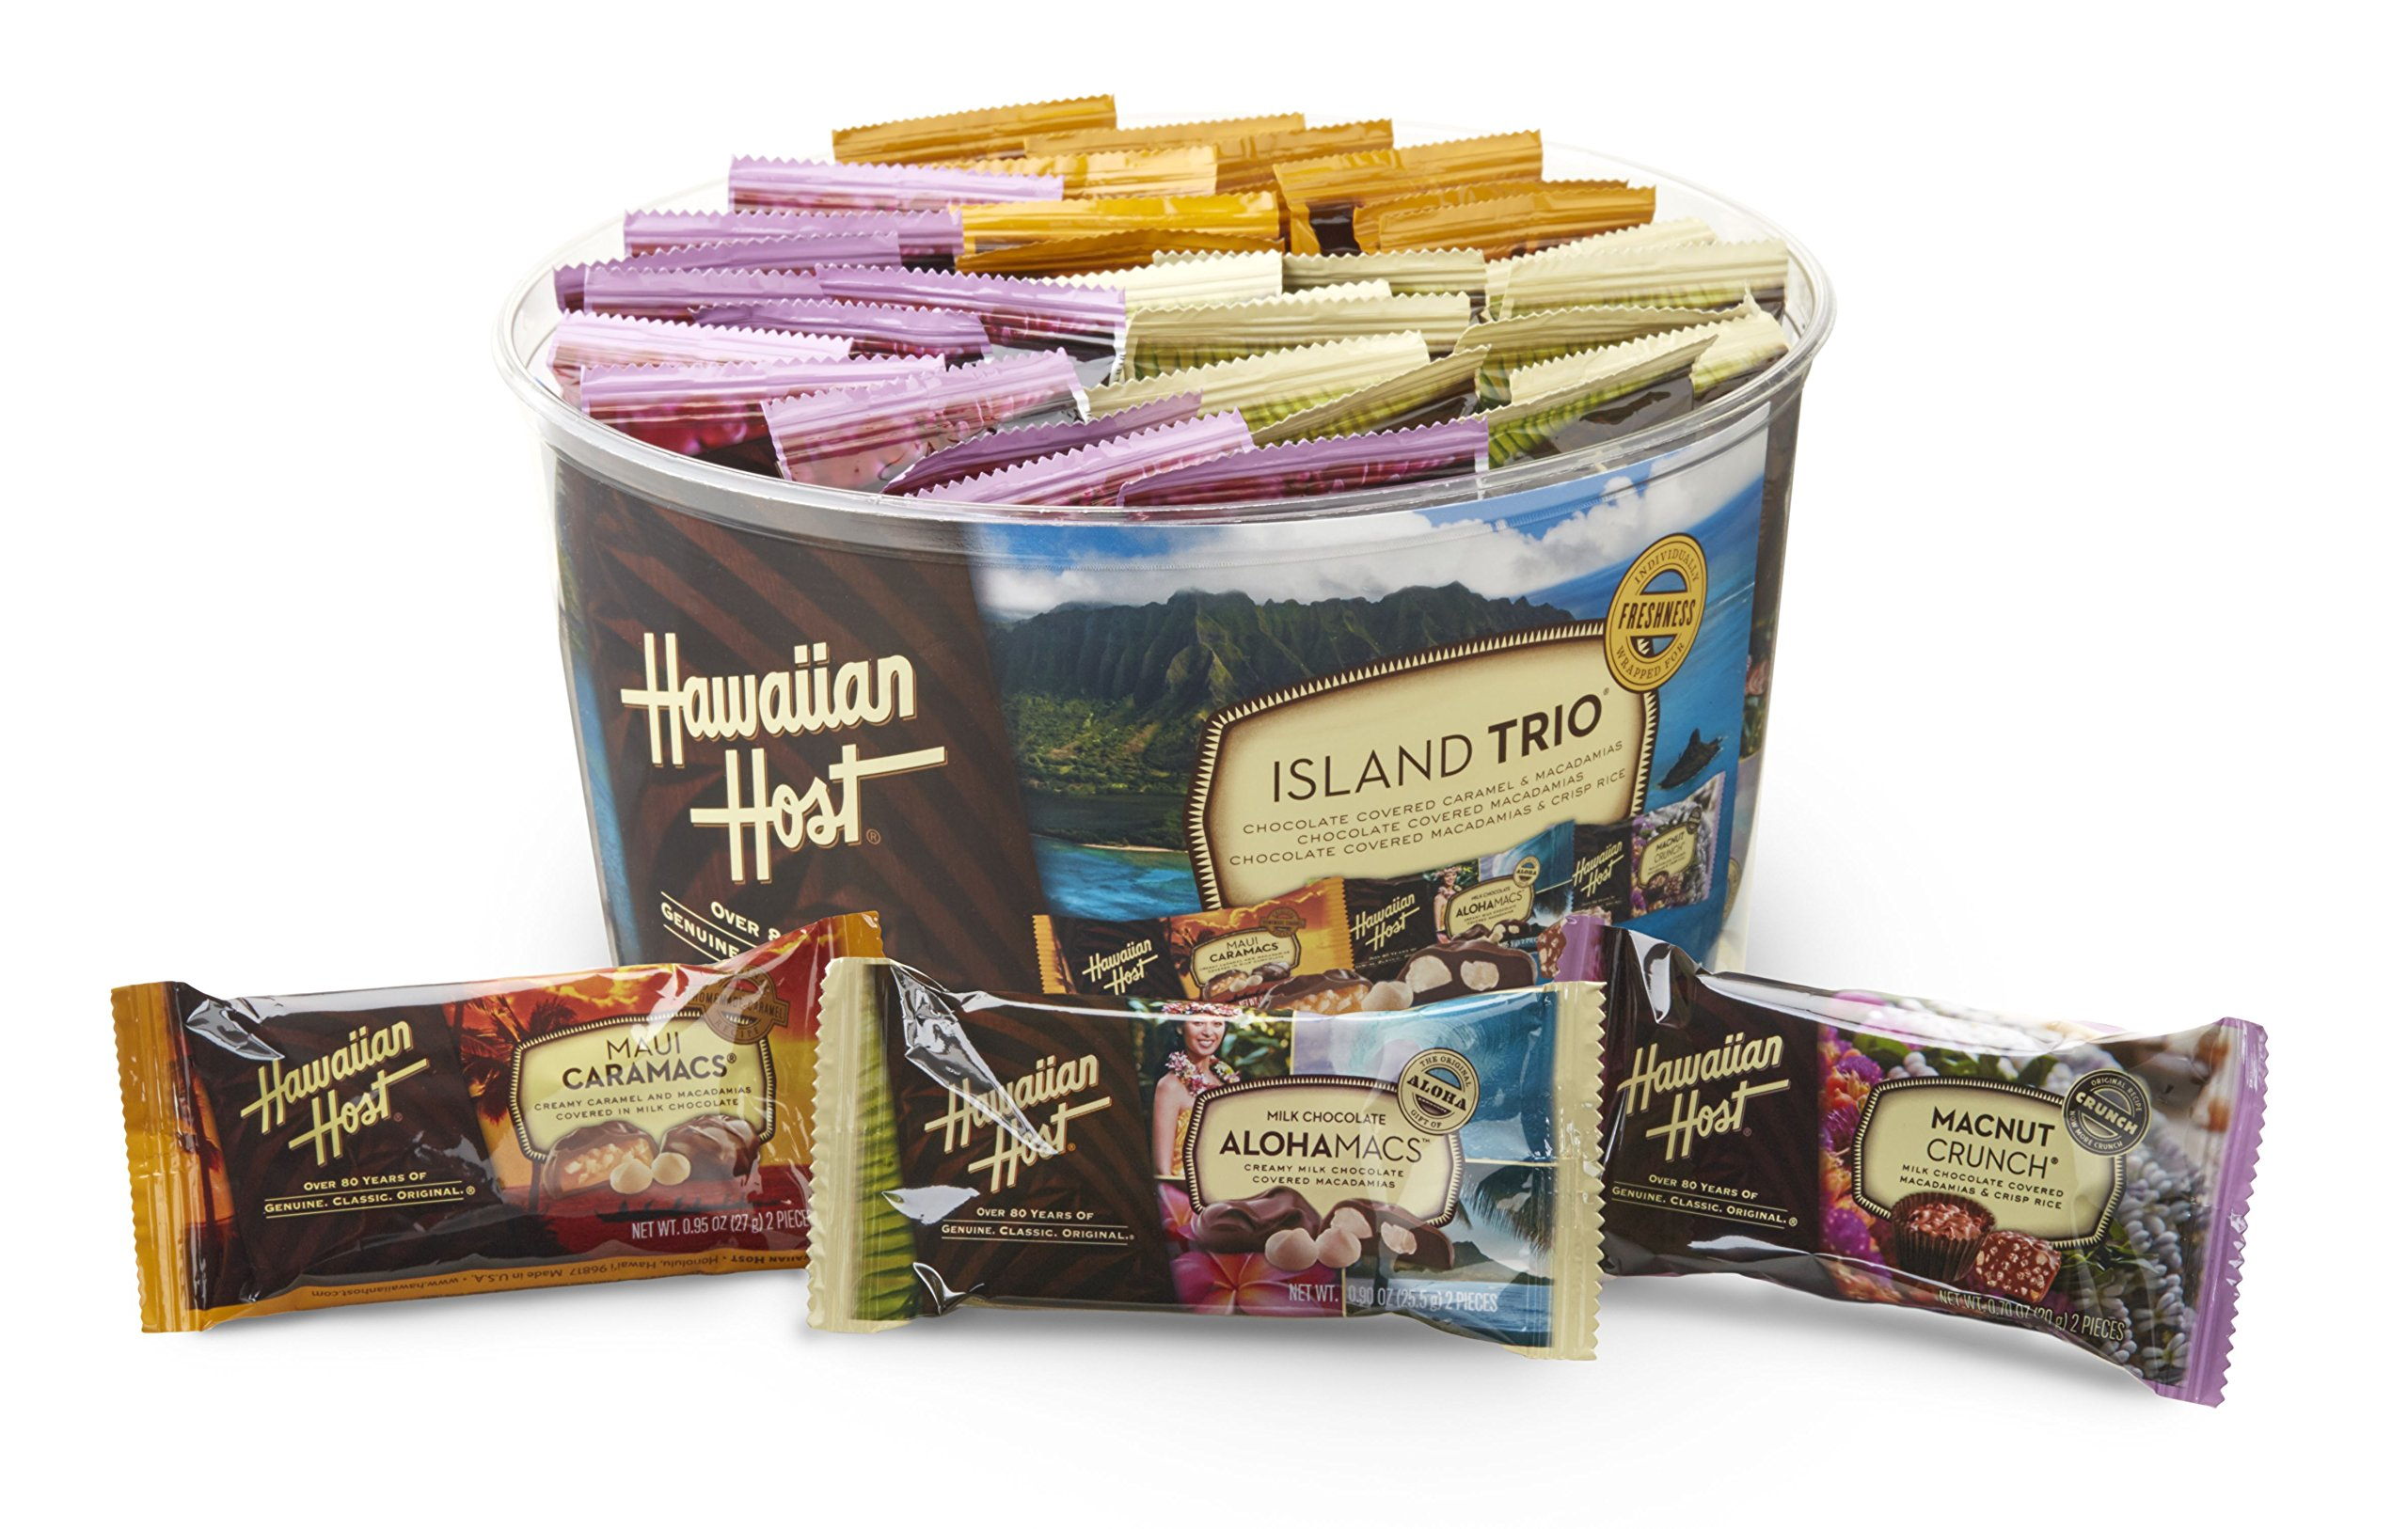 Hawaiian Host Island Trio Gift Pack 36 Count Chocolate and Macadamia